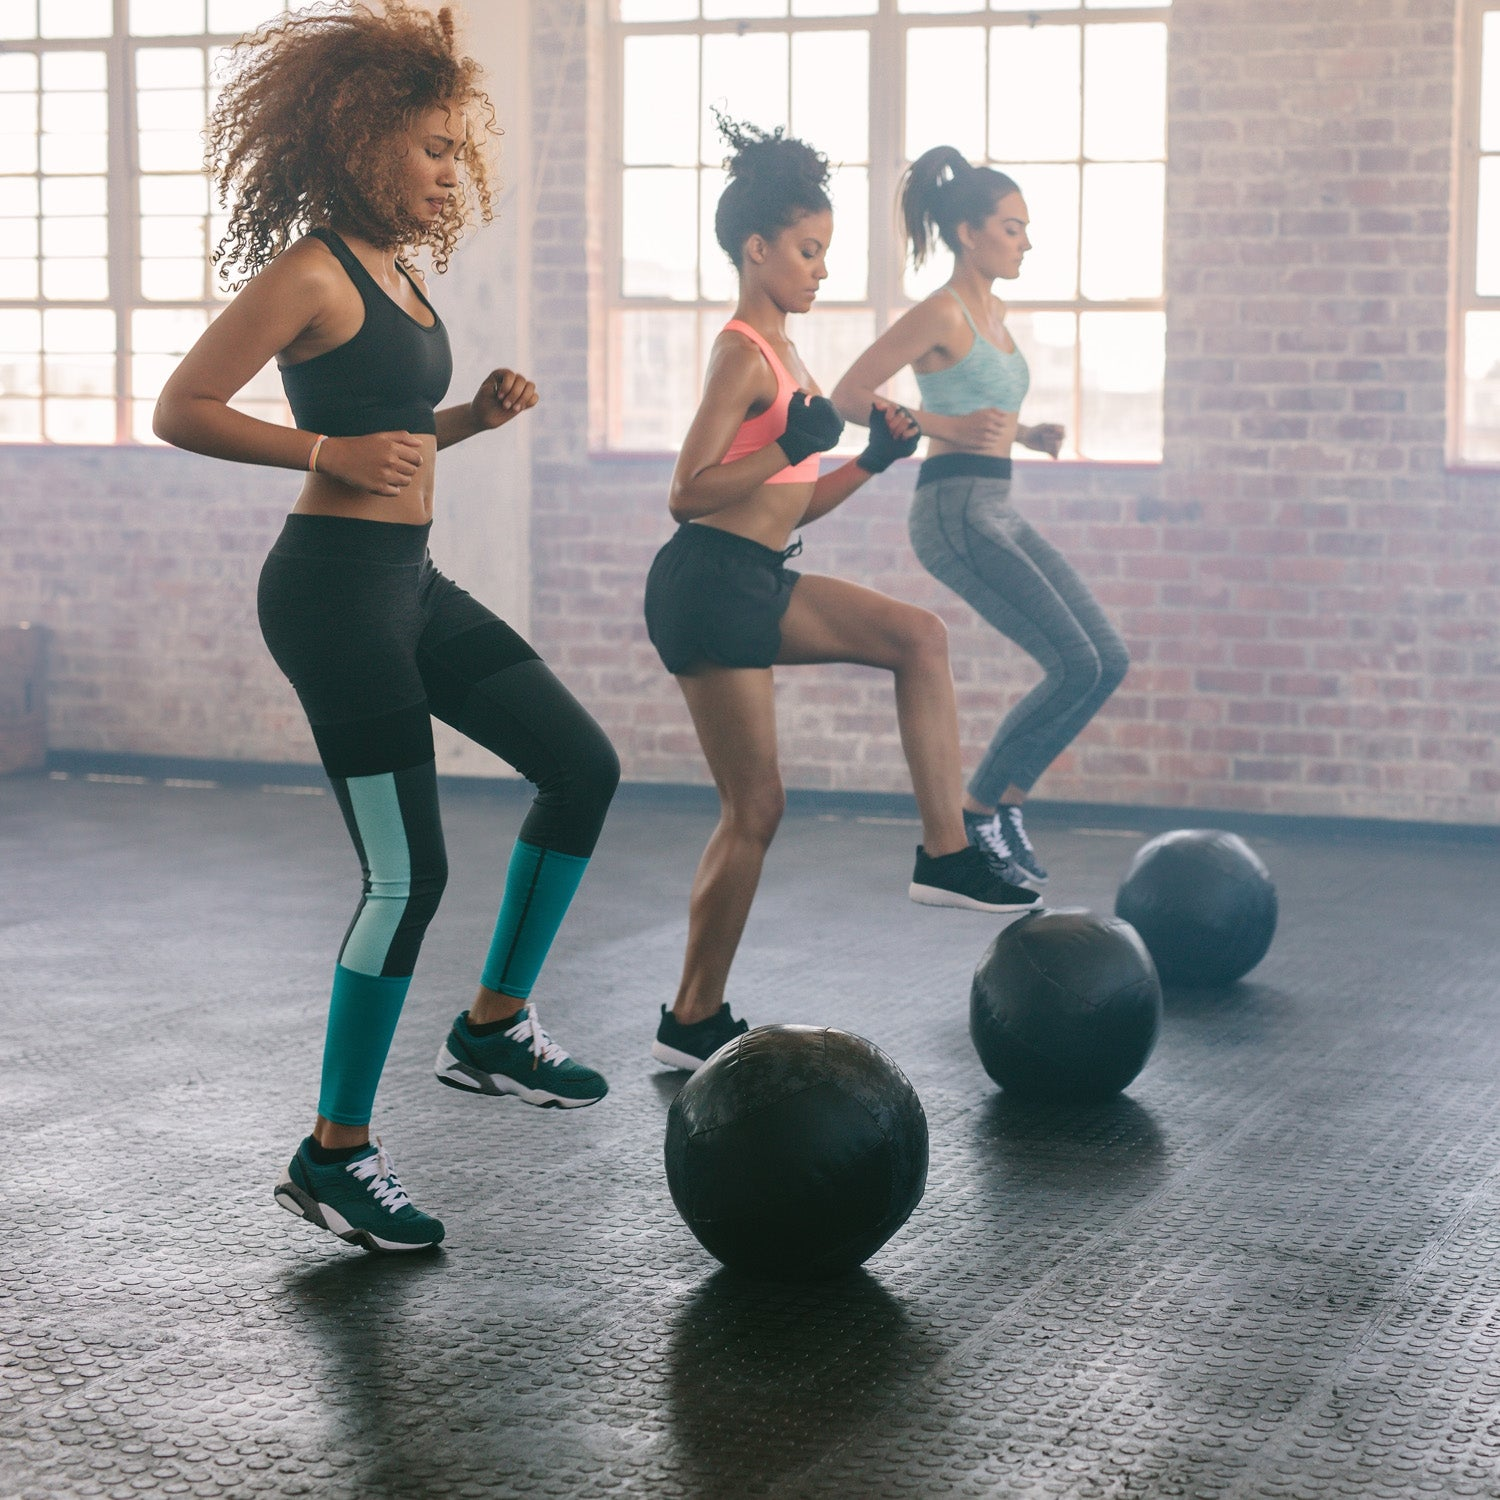 3 Ways To Build Conditioning Exercises Into Everyday Life